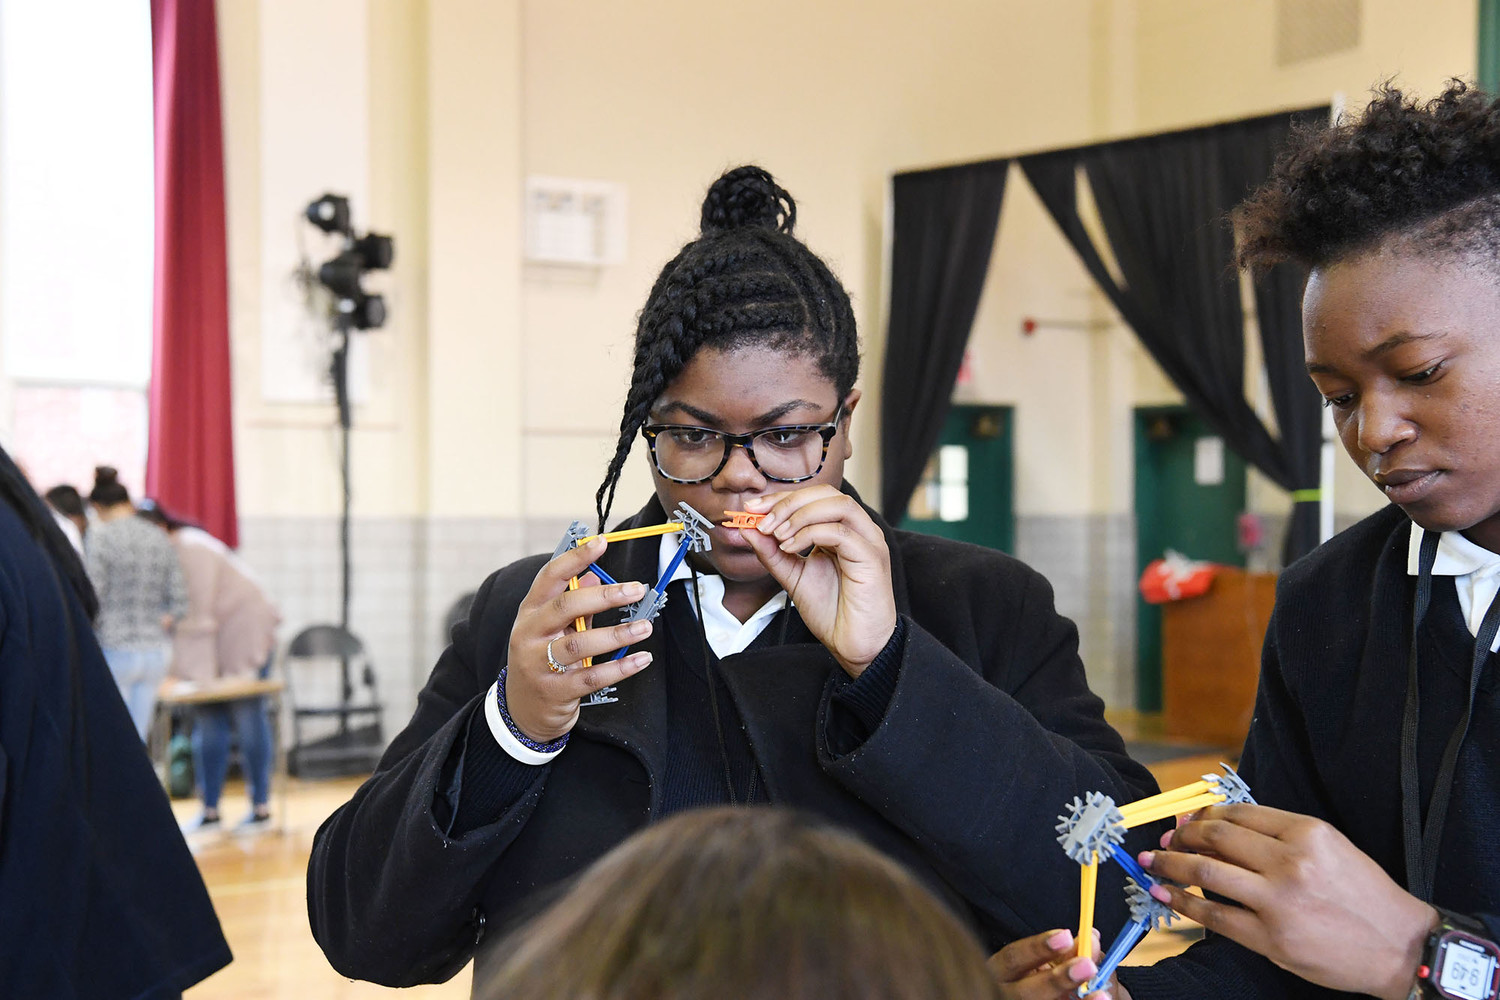 Notre Dame Academy's bridge experiment included attentive work by Lizzie Egbe and Nyoka Banes.